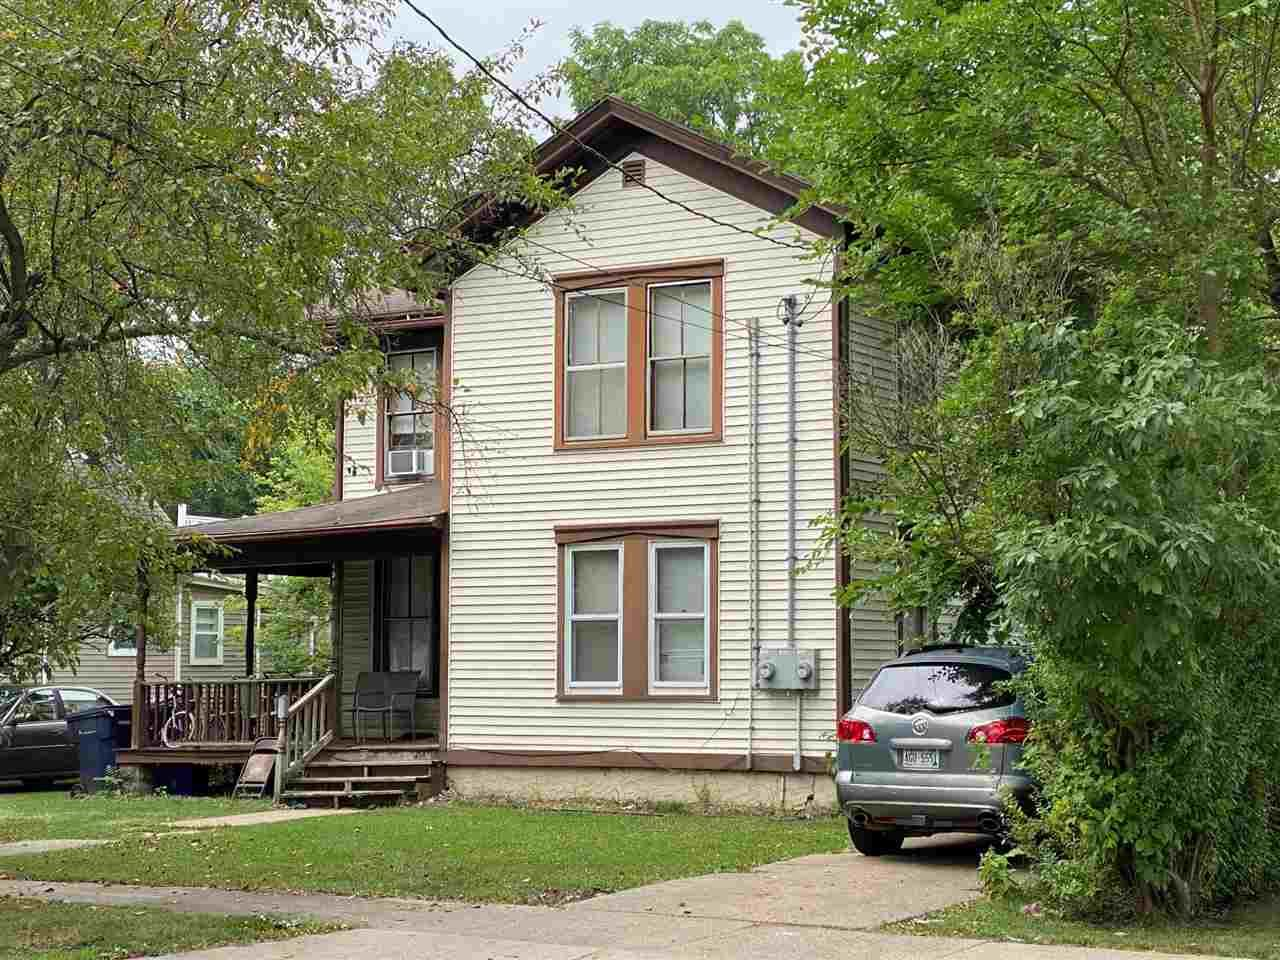 451 Pearl St, Janesville, WI 53548 - #: 1915263